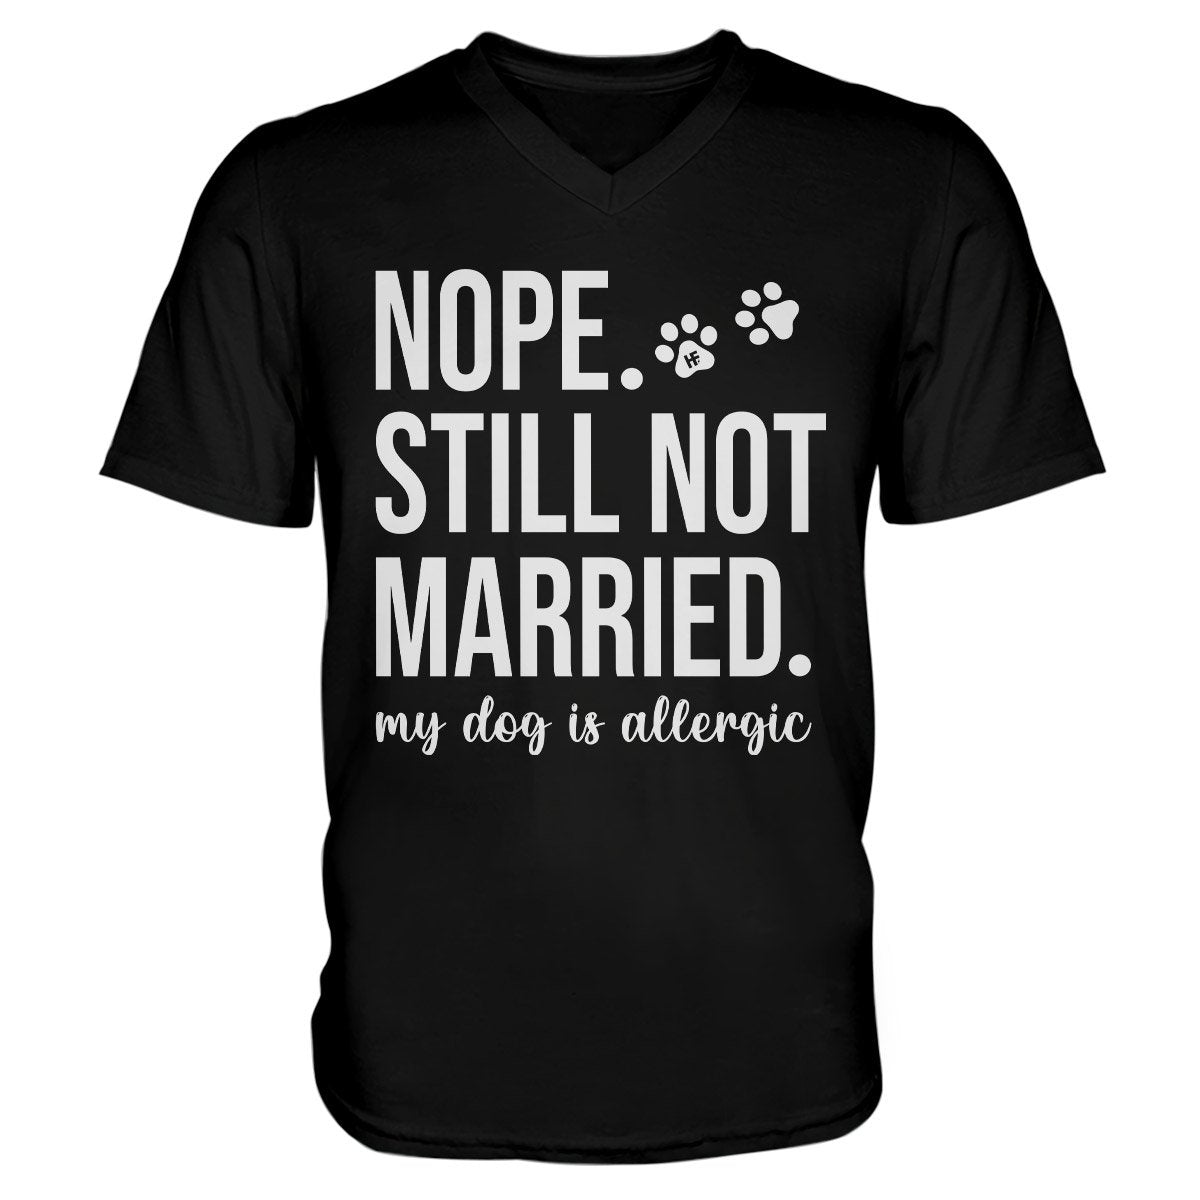 Nope Still Not Married My Dog Is Allergic EZ16 0503 Unisex V-neck T-shirt